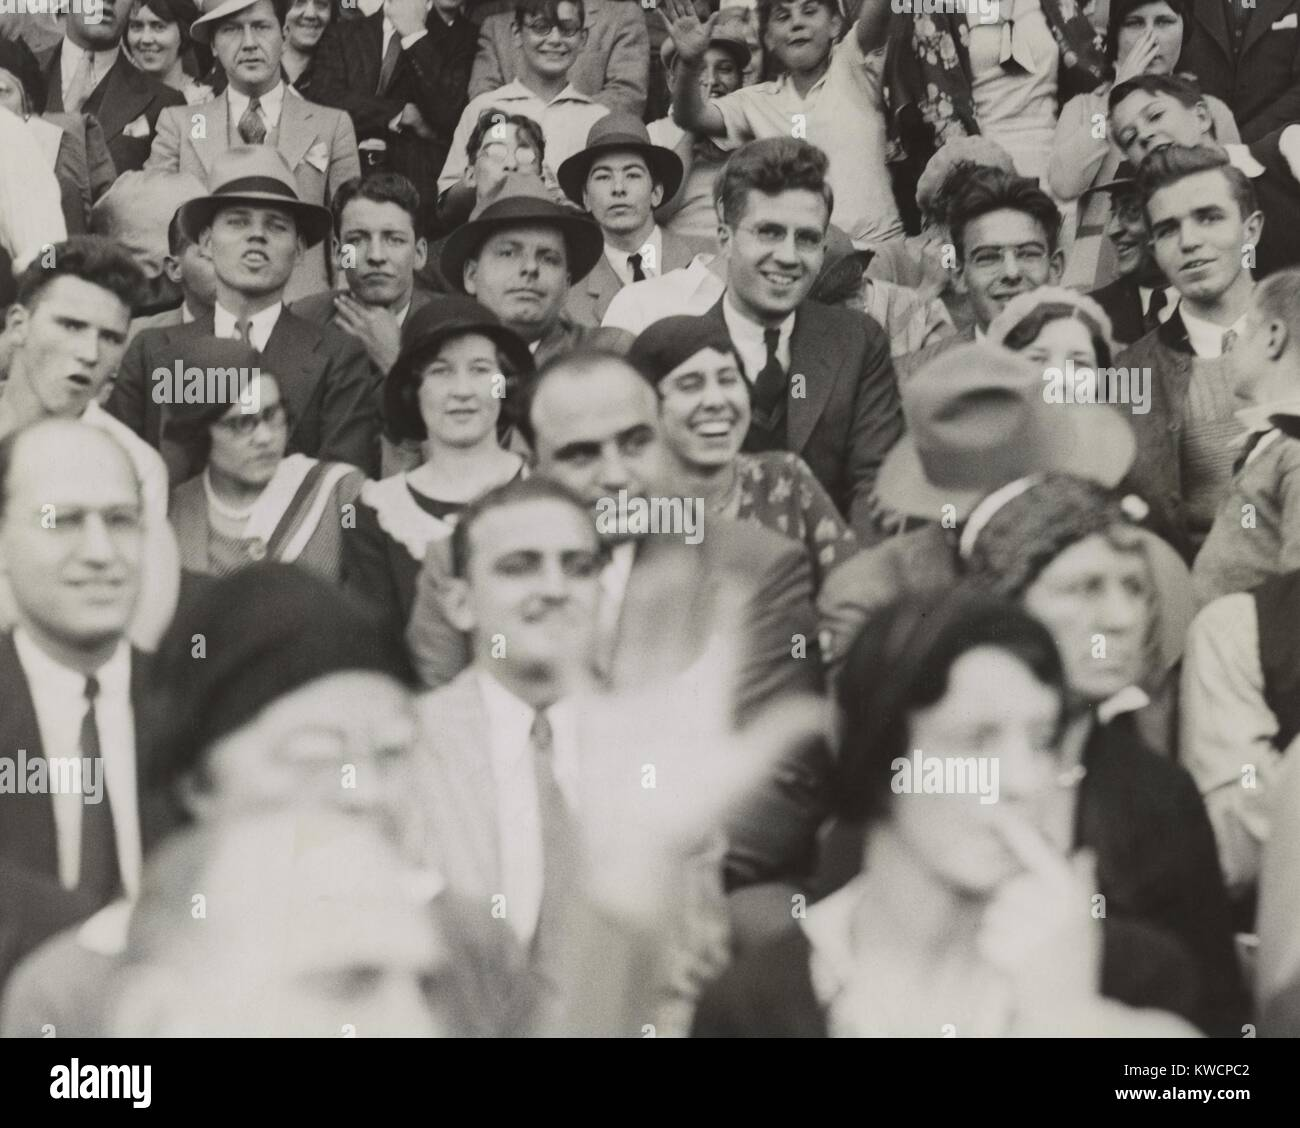 Al Capone (center), seated in front of three women, watching a college football game. He sits with other fans at Stock Photo